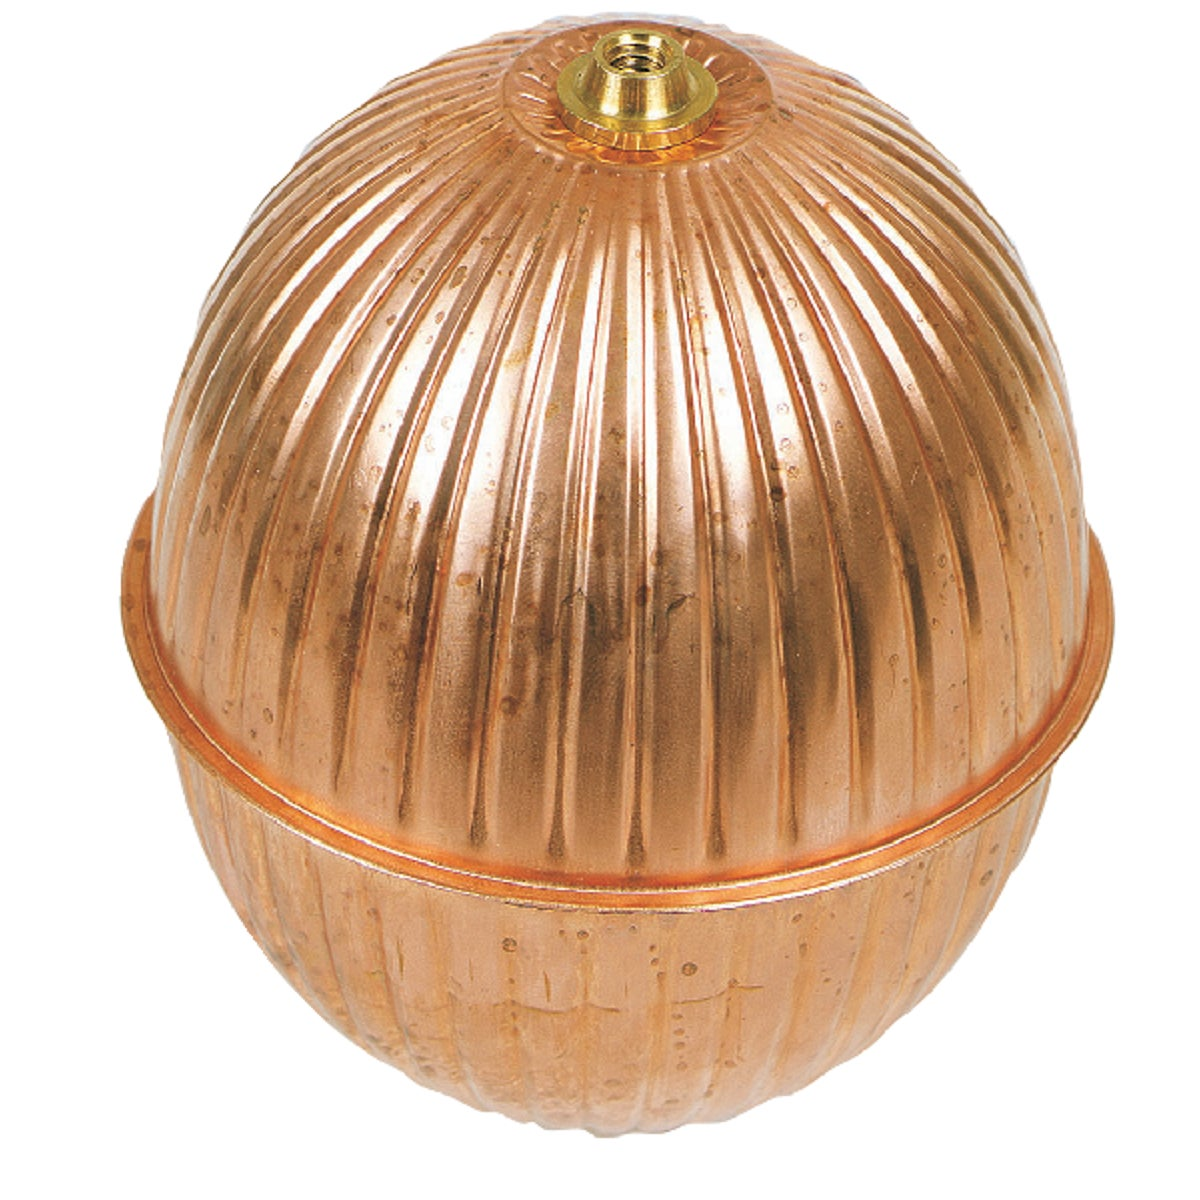 COPPER FLOAT - C05041 by Jones Stephens Corp